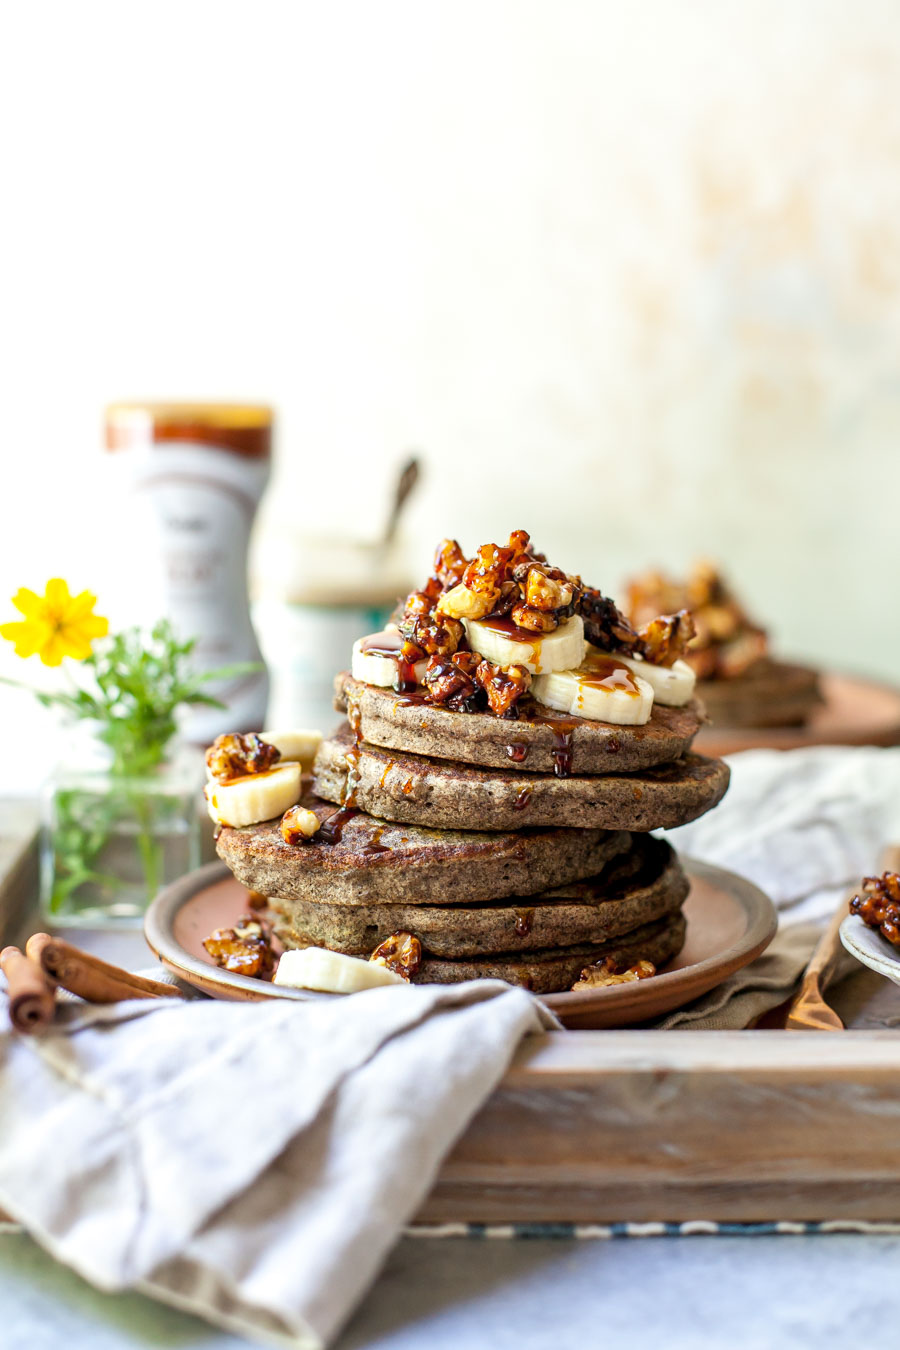 Banana Bread Pancakes made with Buckwheat Flour and Topped with Stovetop Candied Walnuts